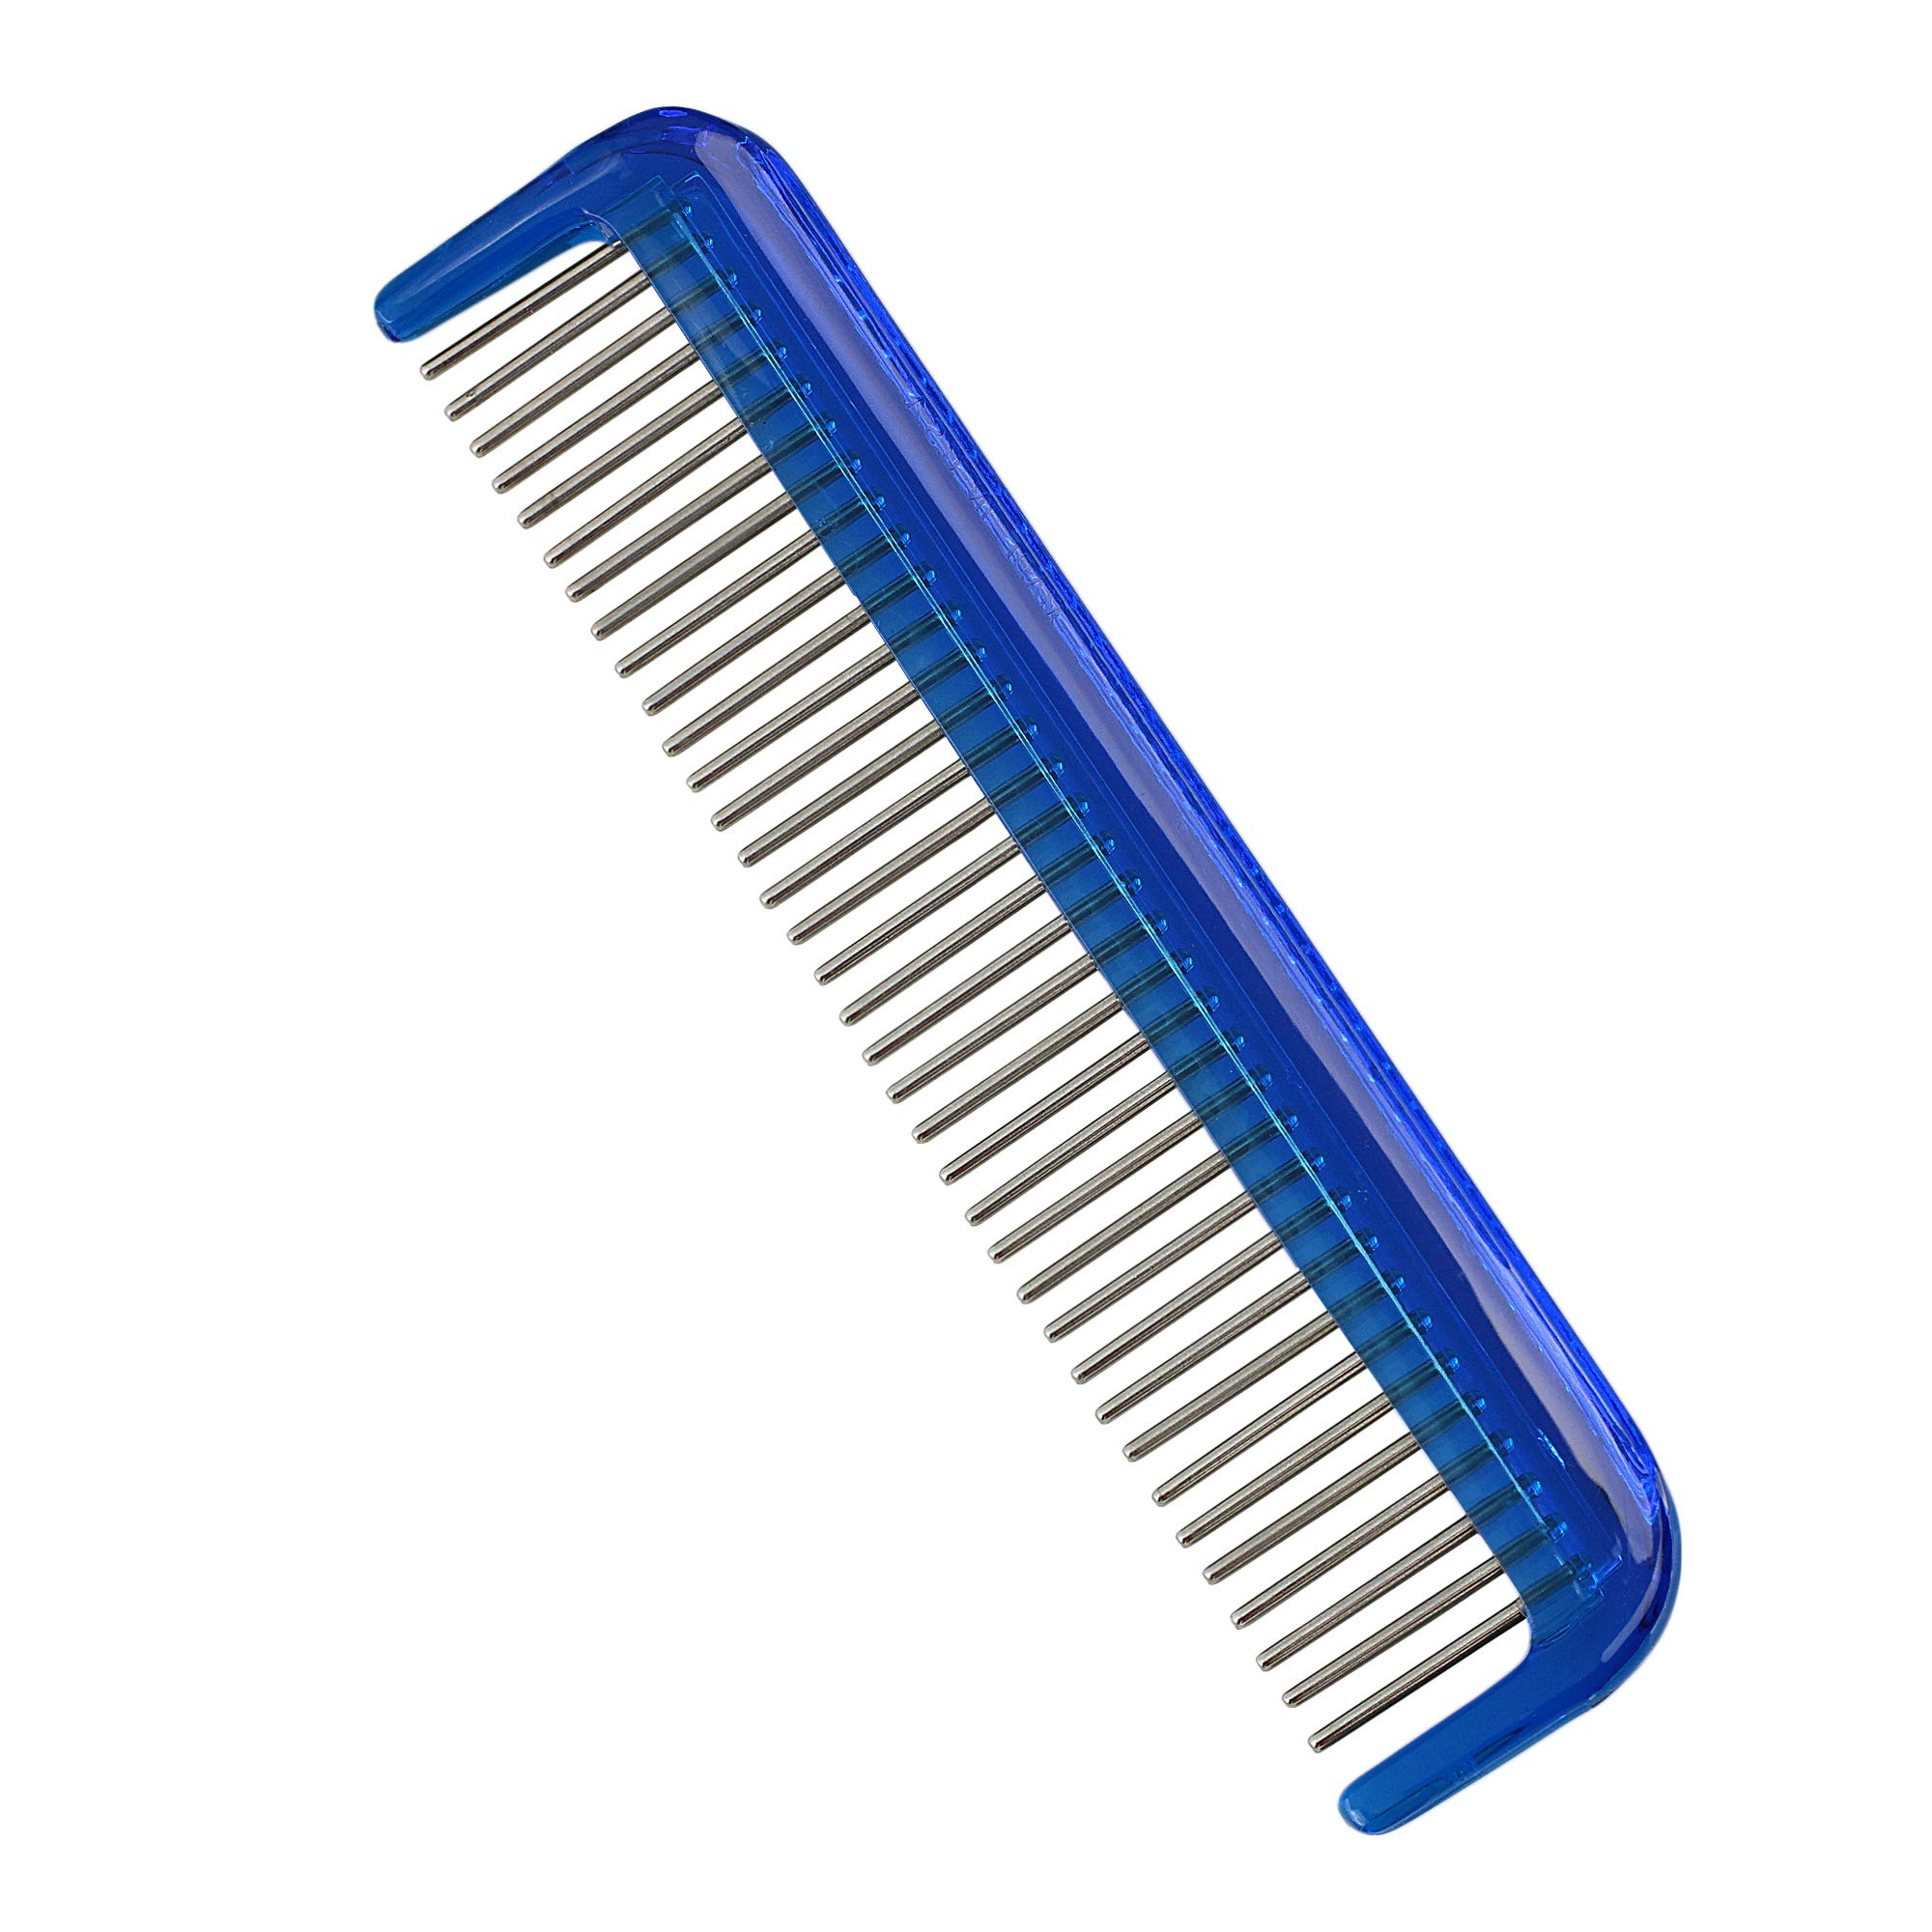 "Hair Doctor Ladies 5"" Comb with rotating stainless steel teeth to reduce hair loss and damage (Ocean Blue)"